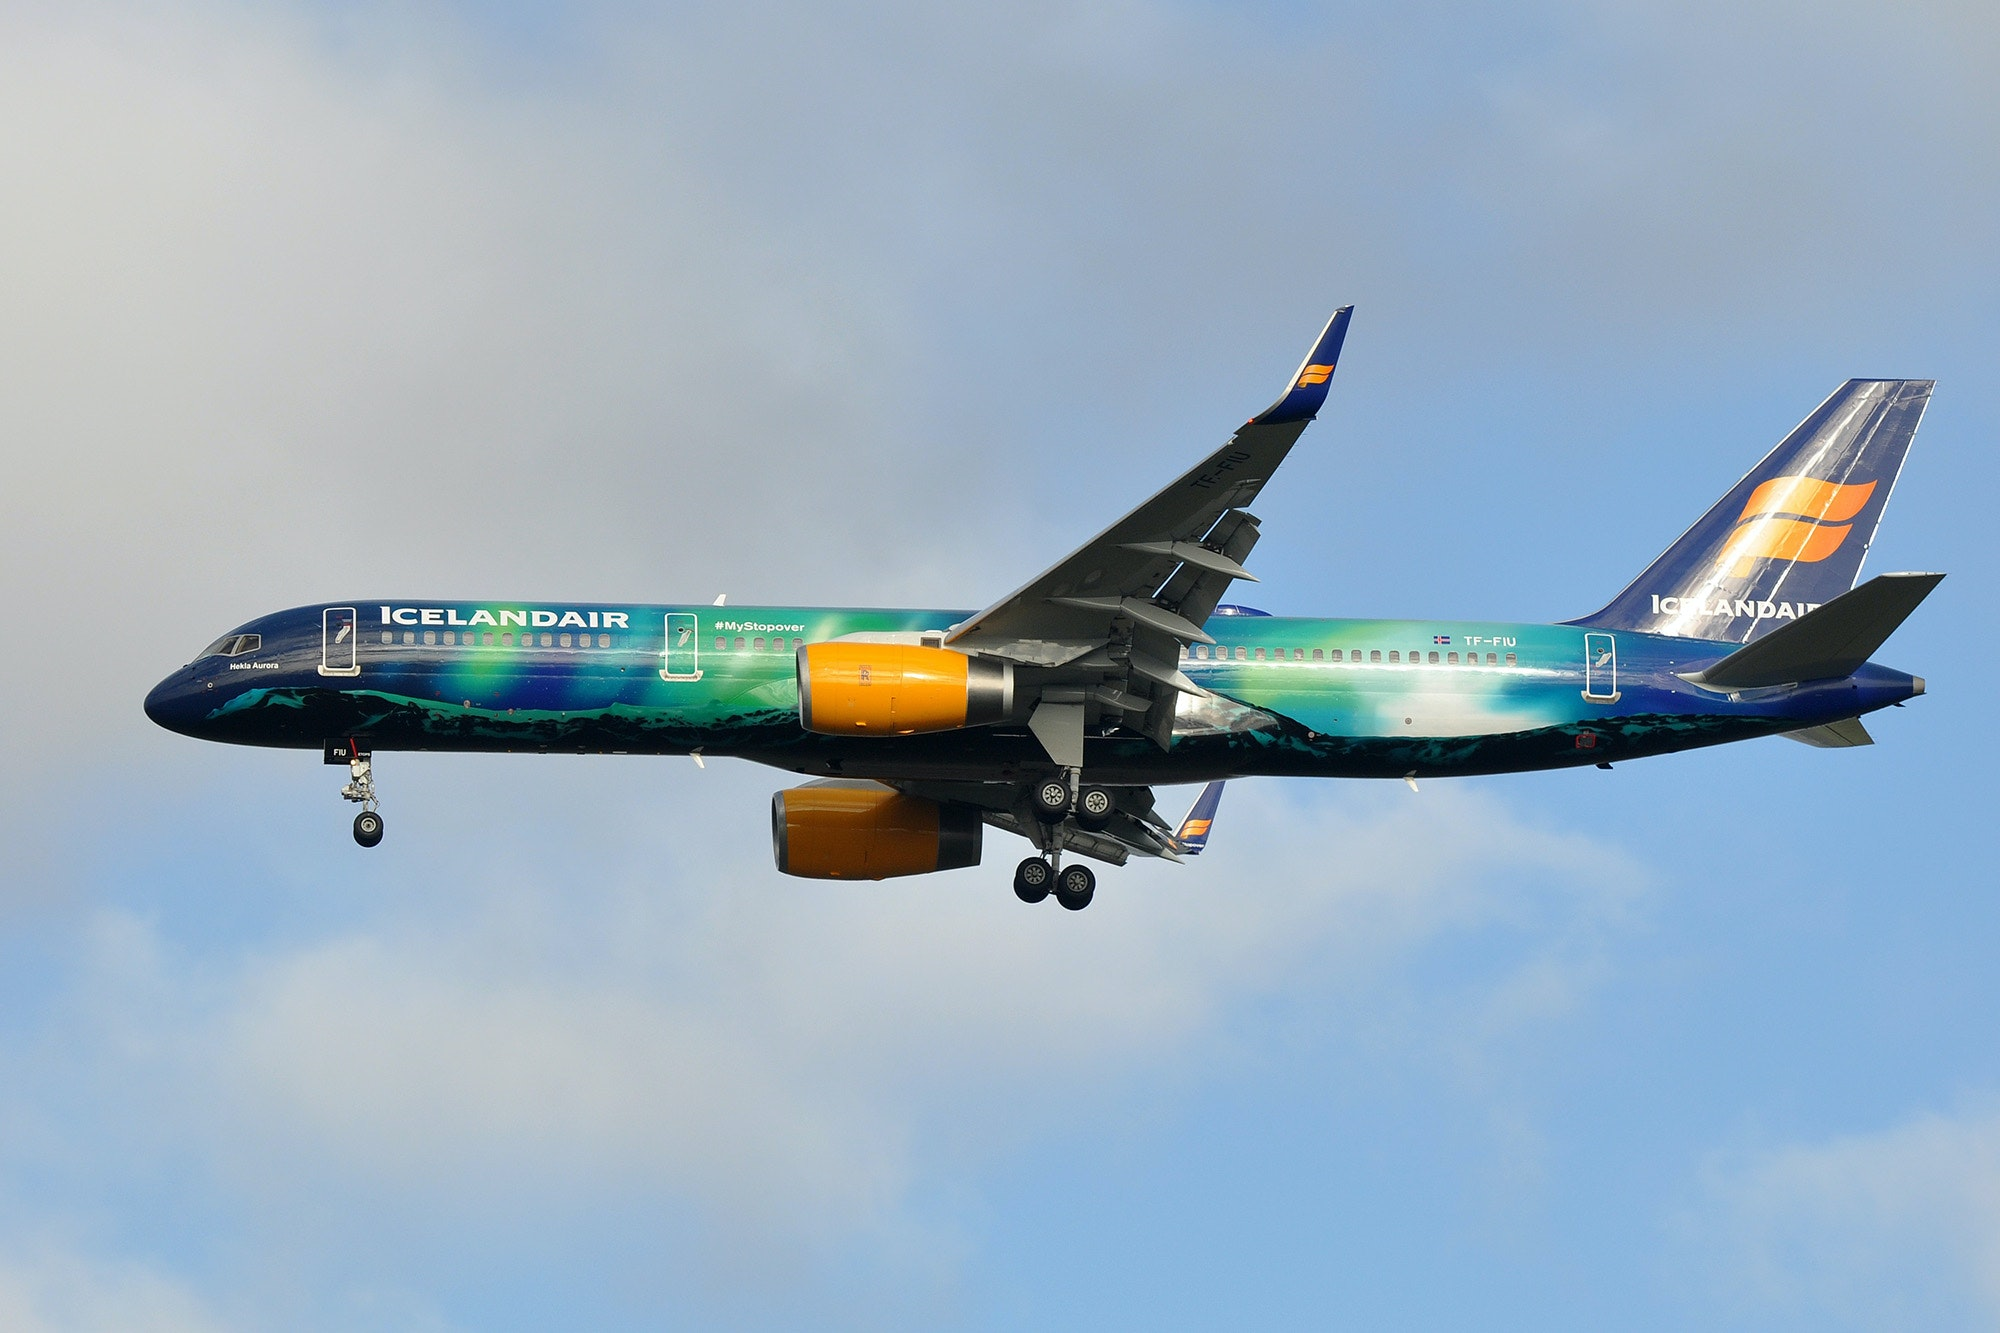 Icelandair's special livery designs feature natural wonders, including the northern lights.